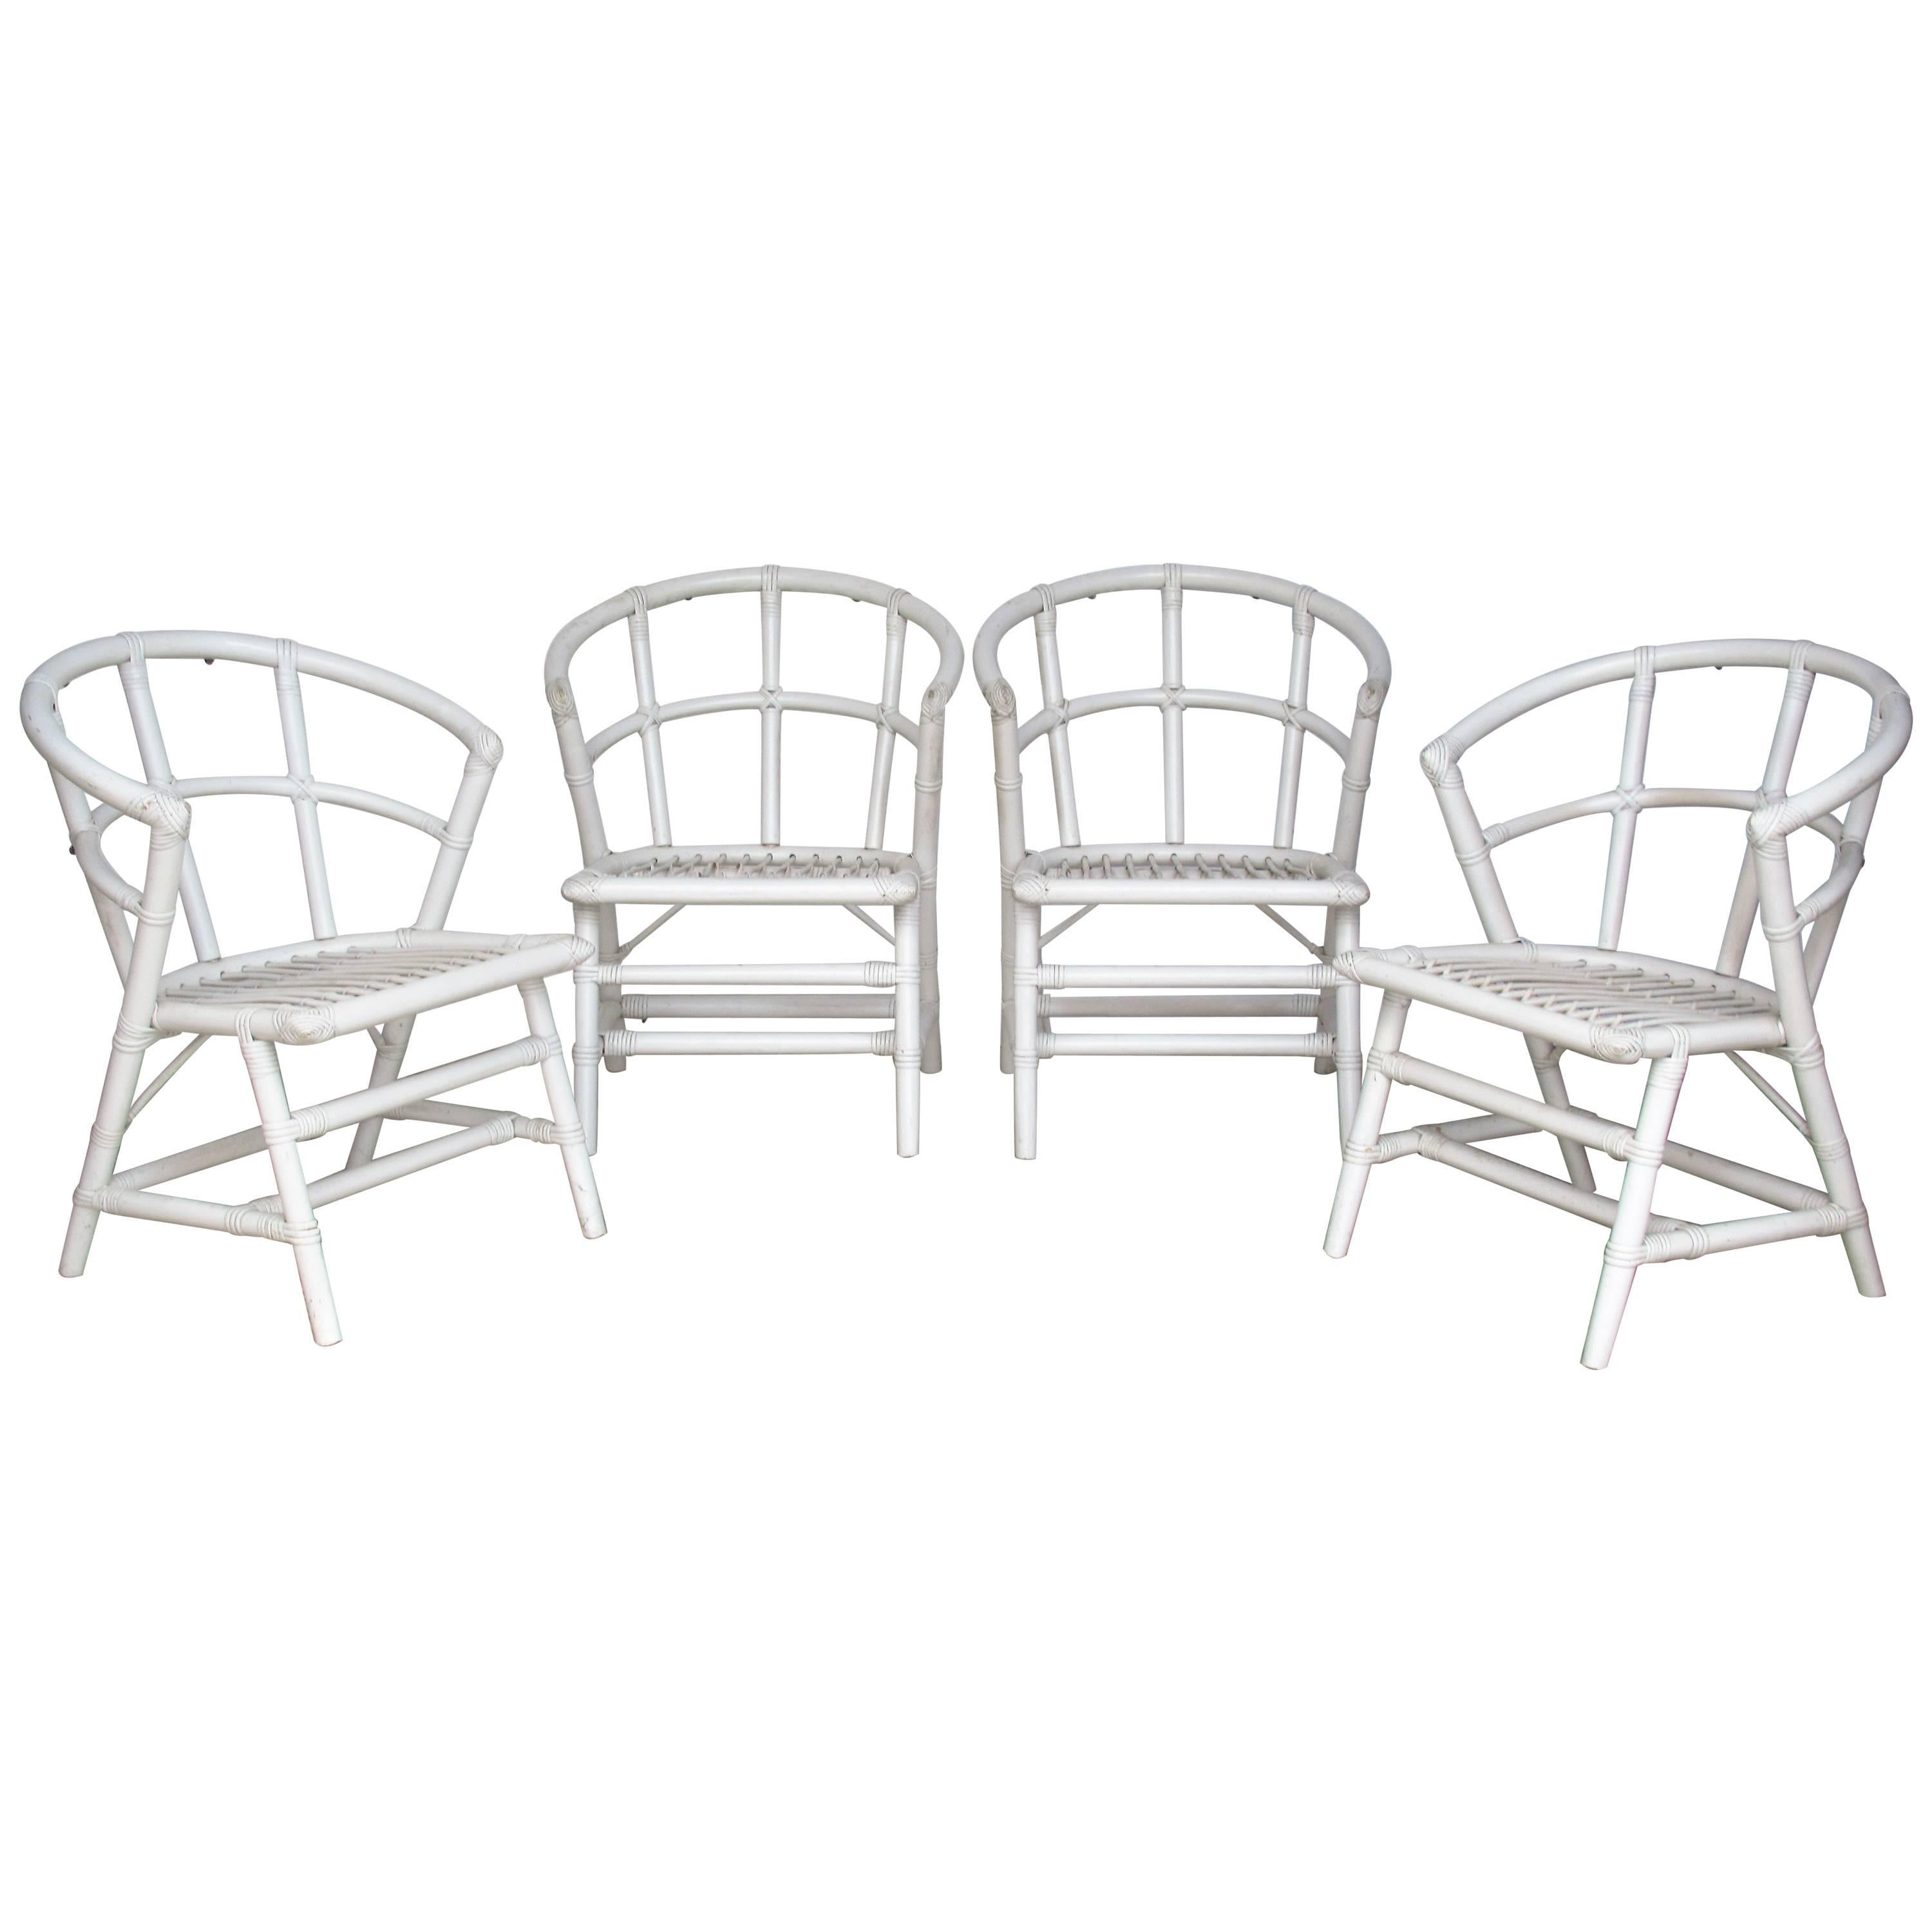 Modernist Rattan Chairs By Willow And Reed Attributed To Tommi Parzinger  For Sale